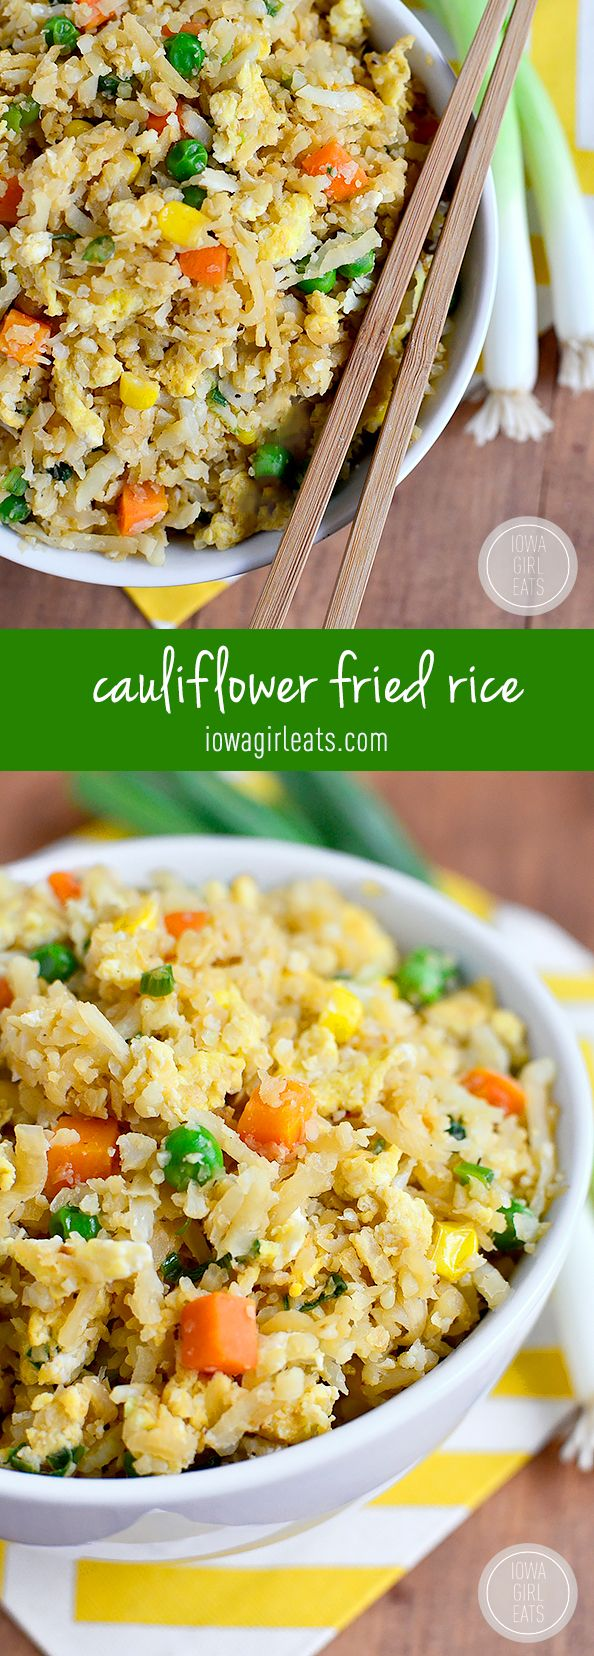 Cauliflower Fried Rice - This will trick your tastebuds in the best way possible.